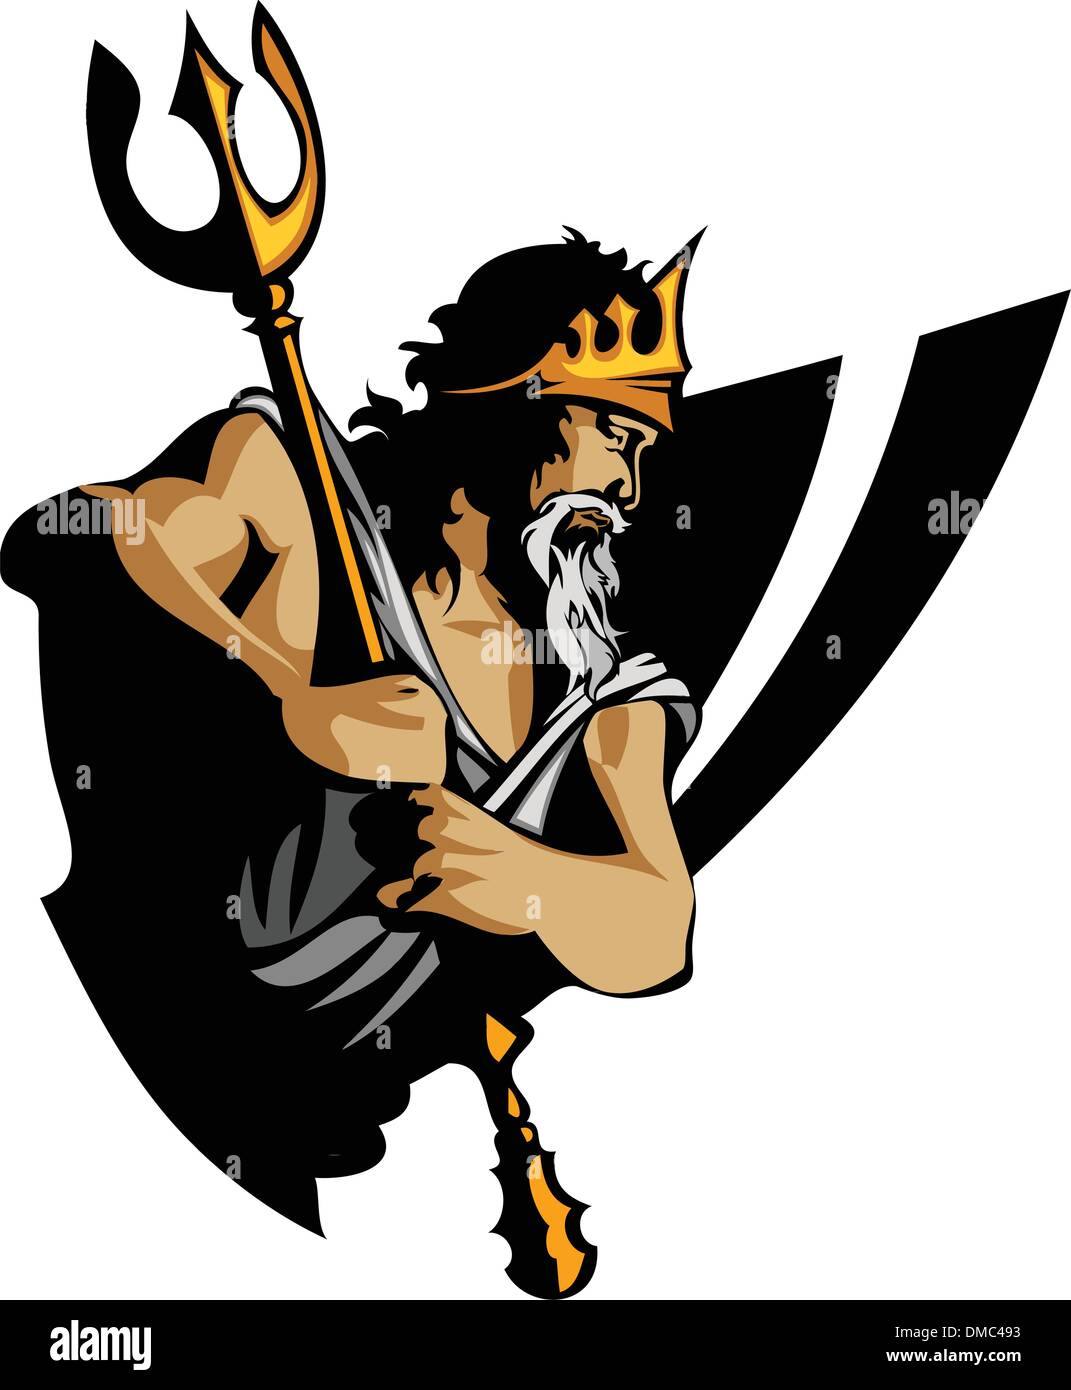 Titan Mascot with Trident and Crown Graphic Vector Illustration - Stock Image